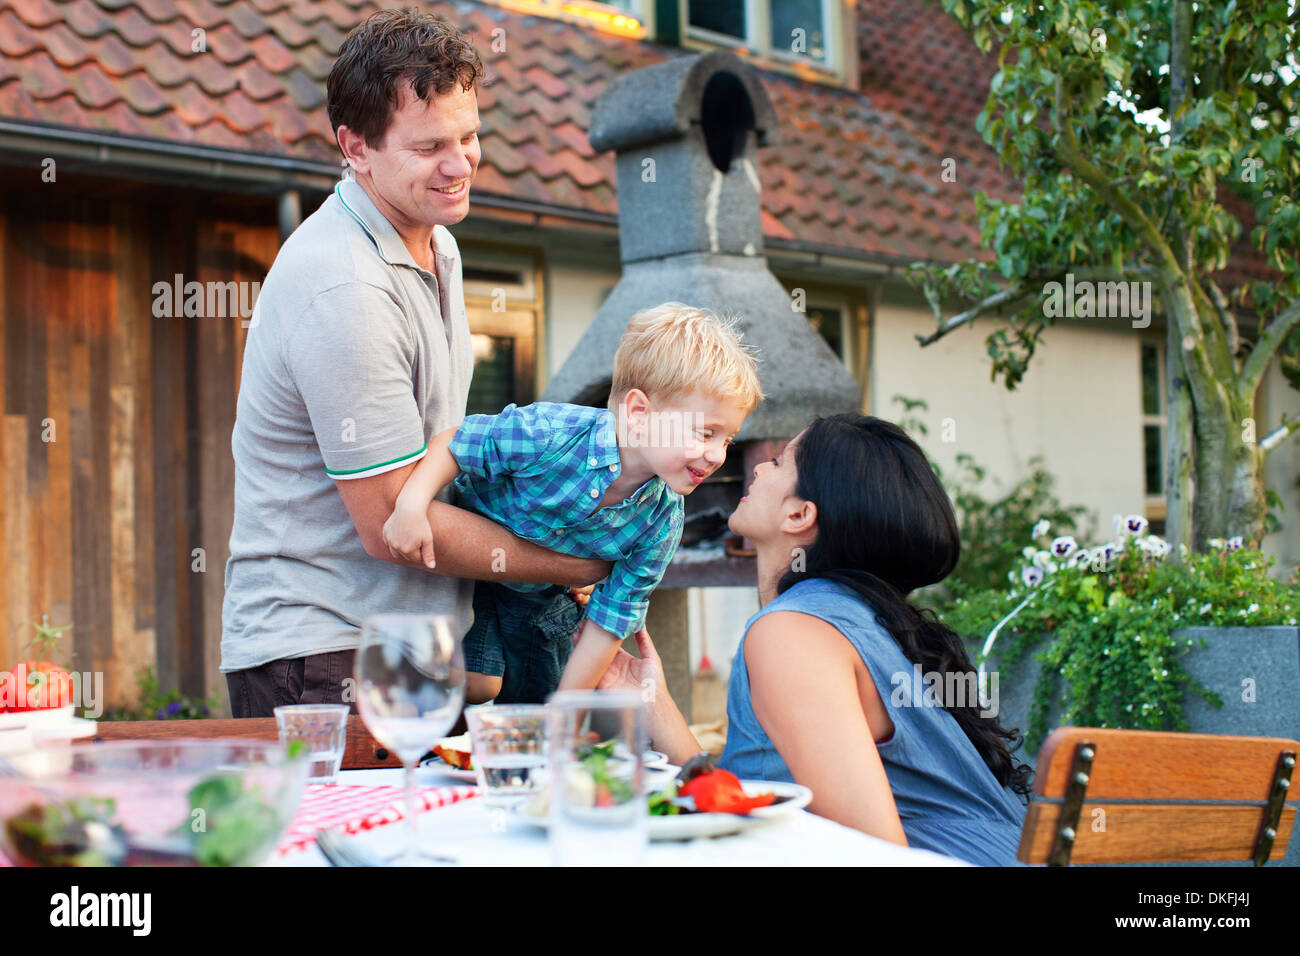 Family having dinner in garden - Stock Image